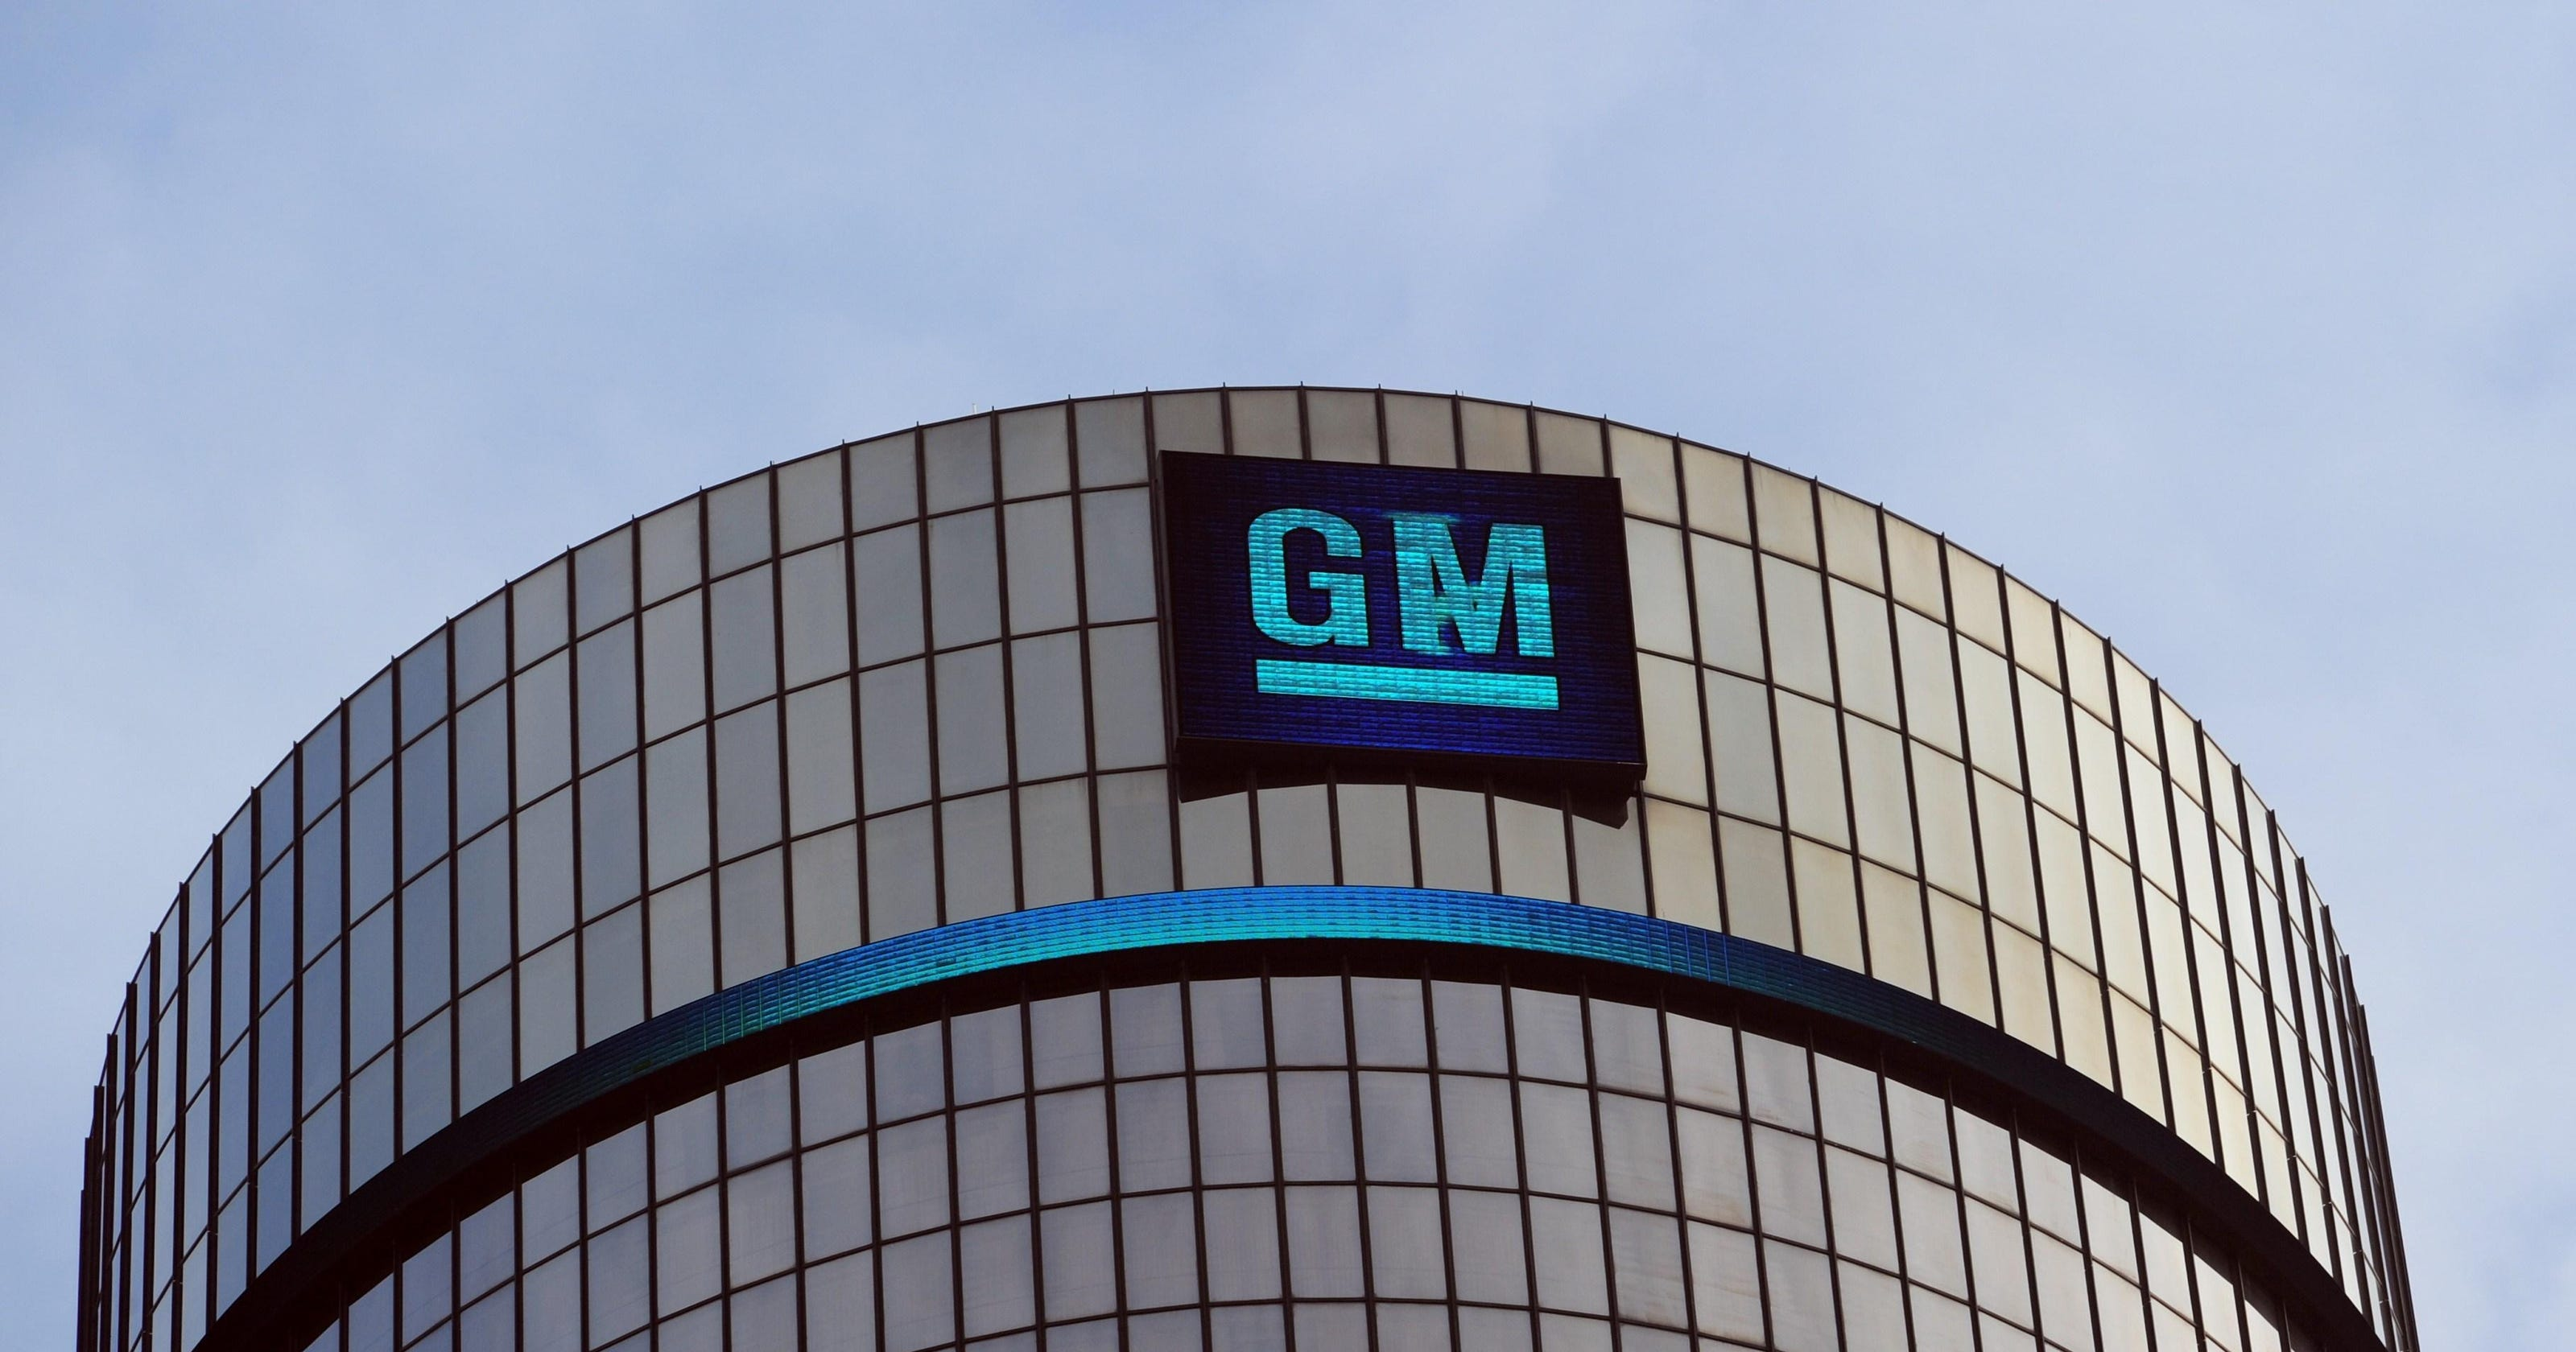 UAW trust sells $1 6 billion worth of GM stock